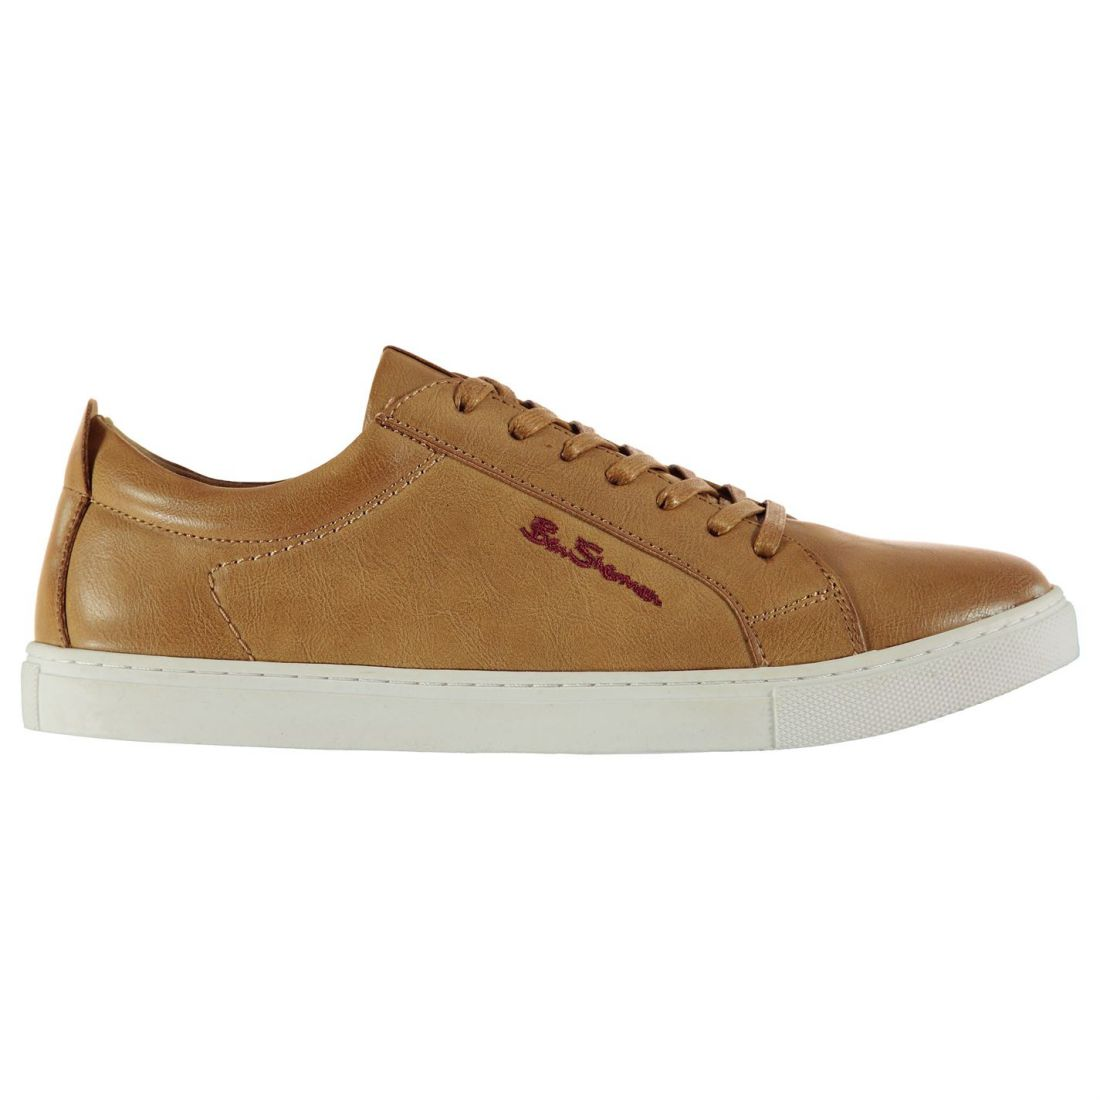 Ben-Sherman-Mens-Trophy-Fashion-Trainers-Low-Top-Lace-Up-Casual-Shoes-Leather thumbnail 3